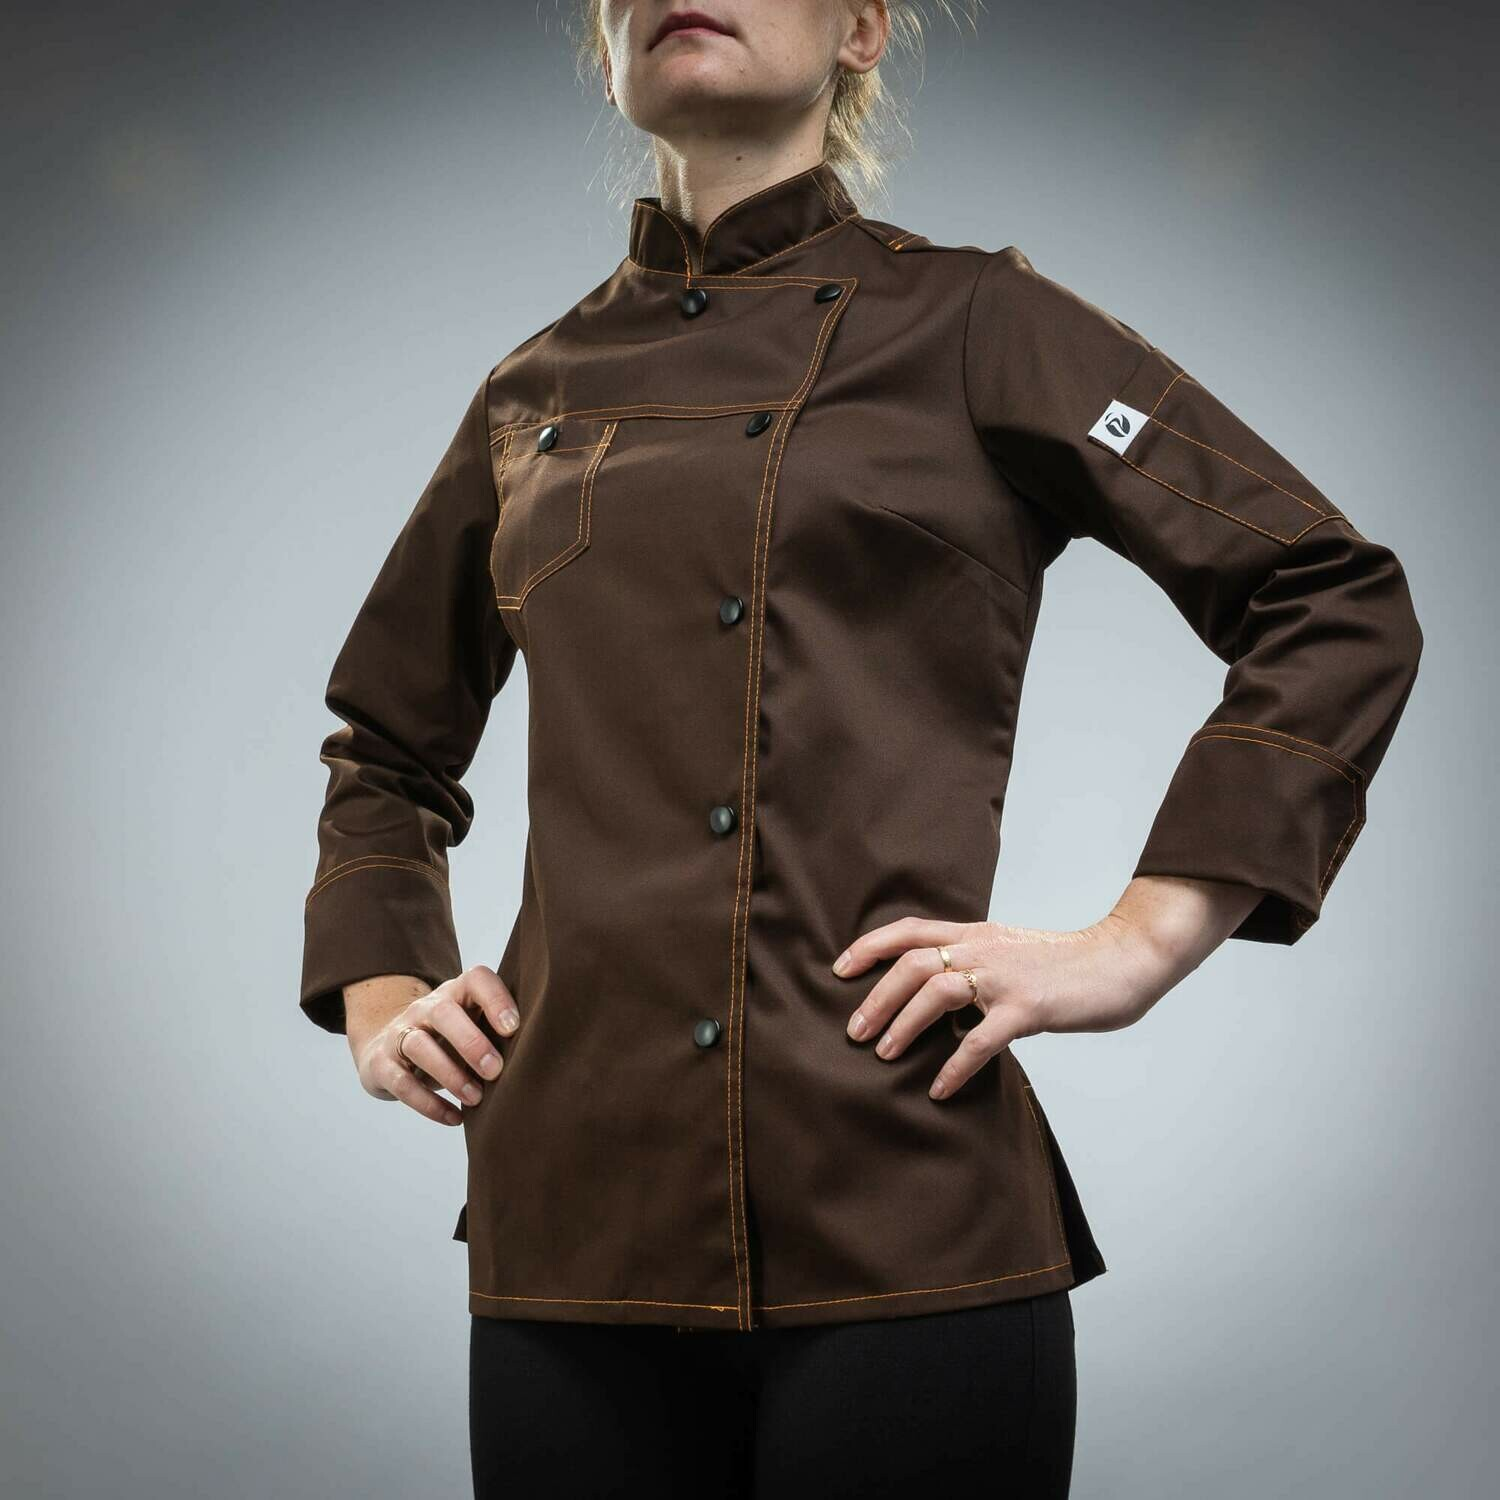 540BR - CHEF'S JACKET